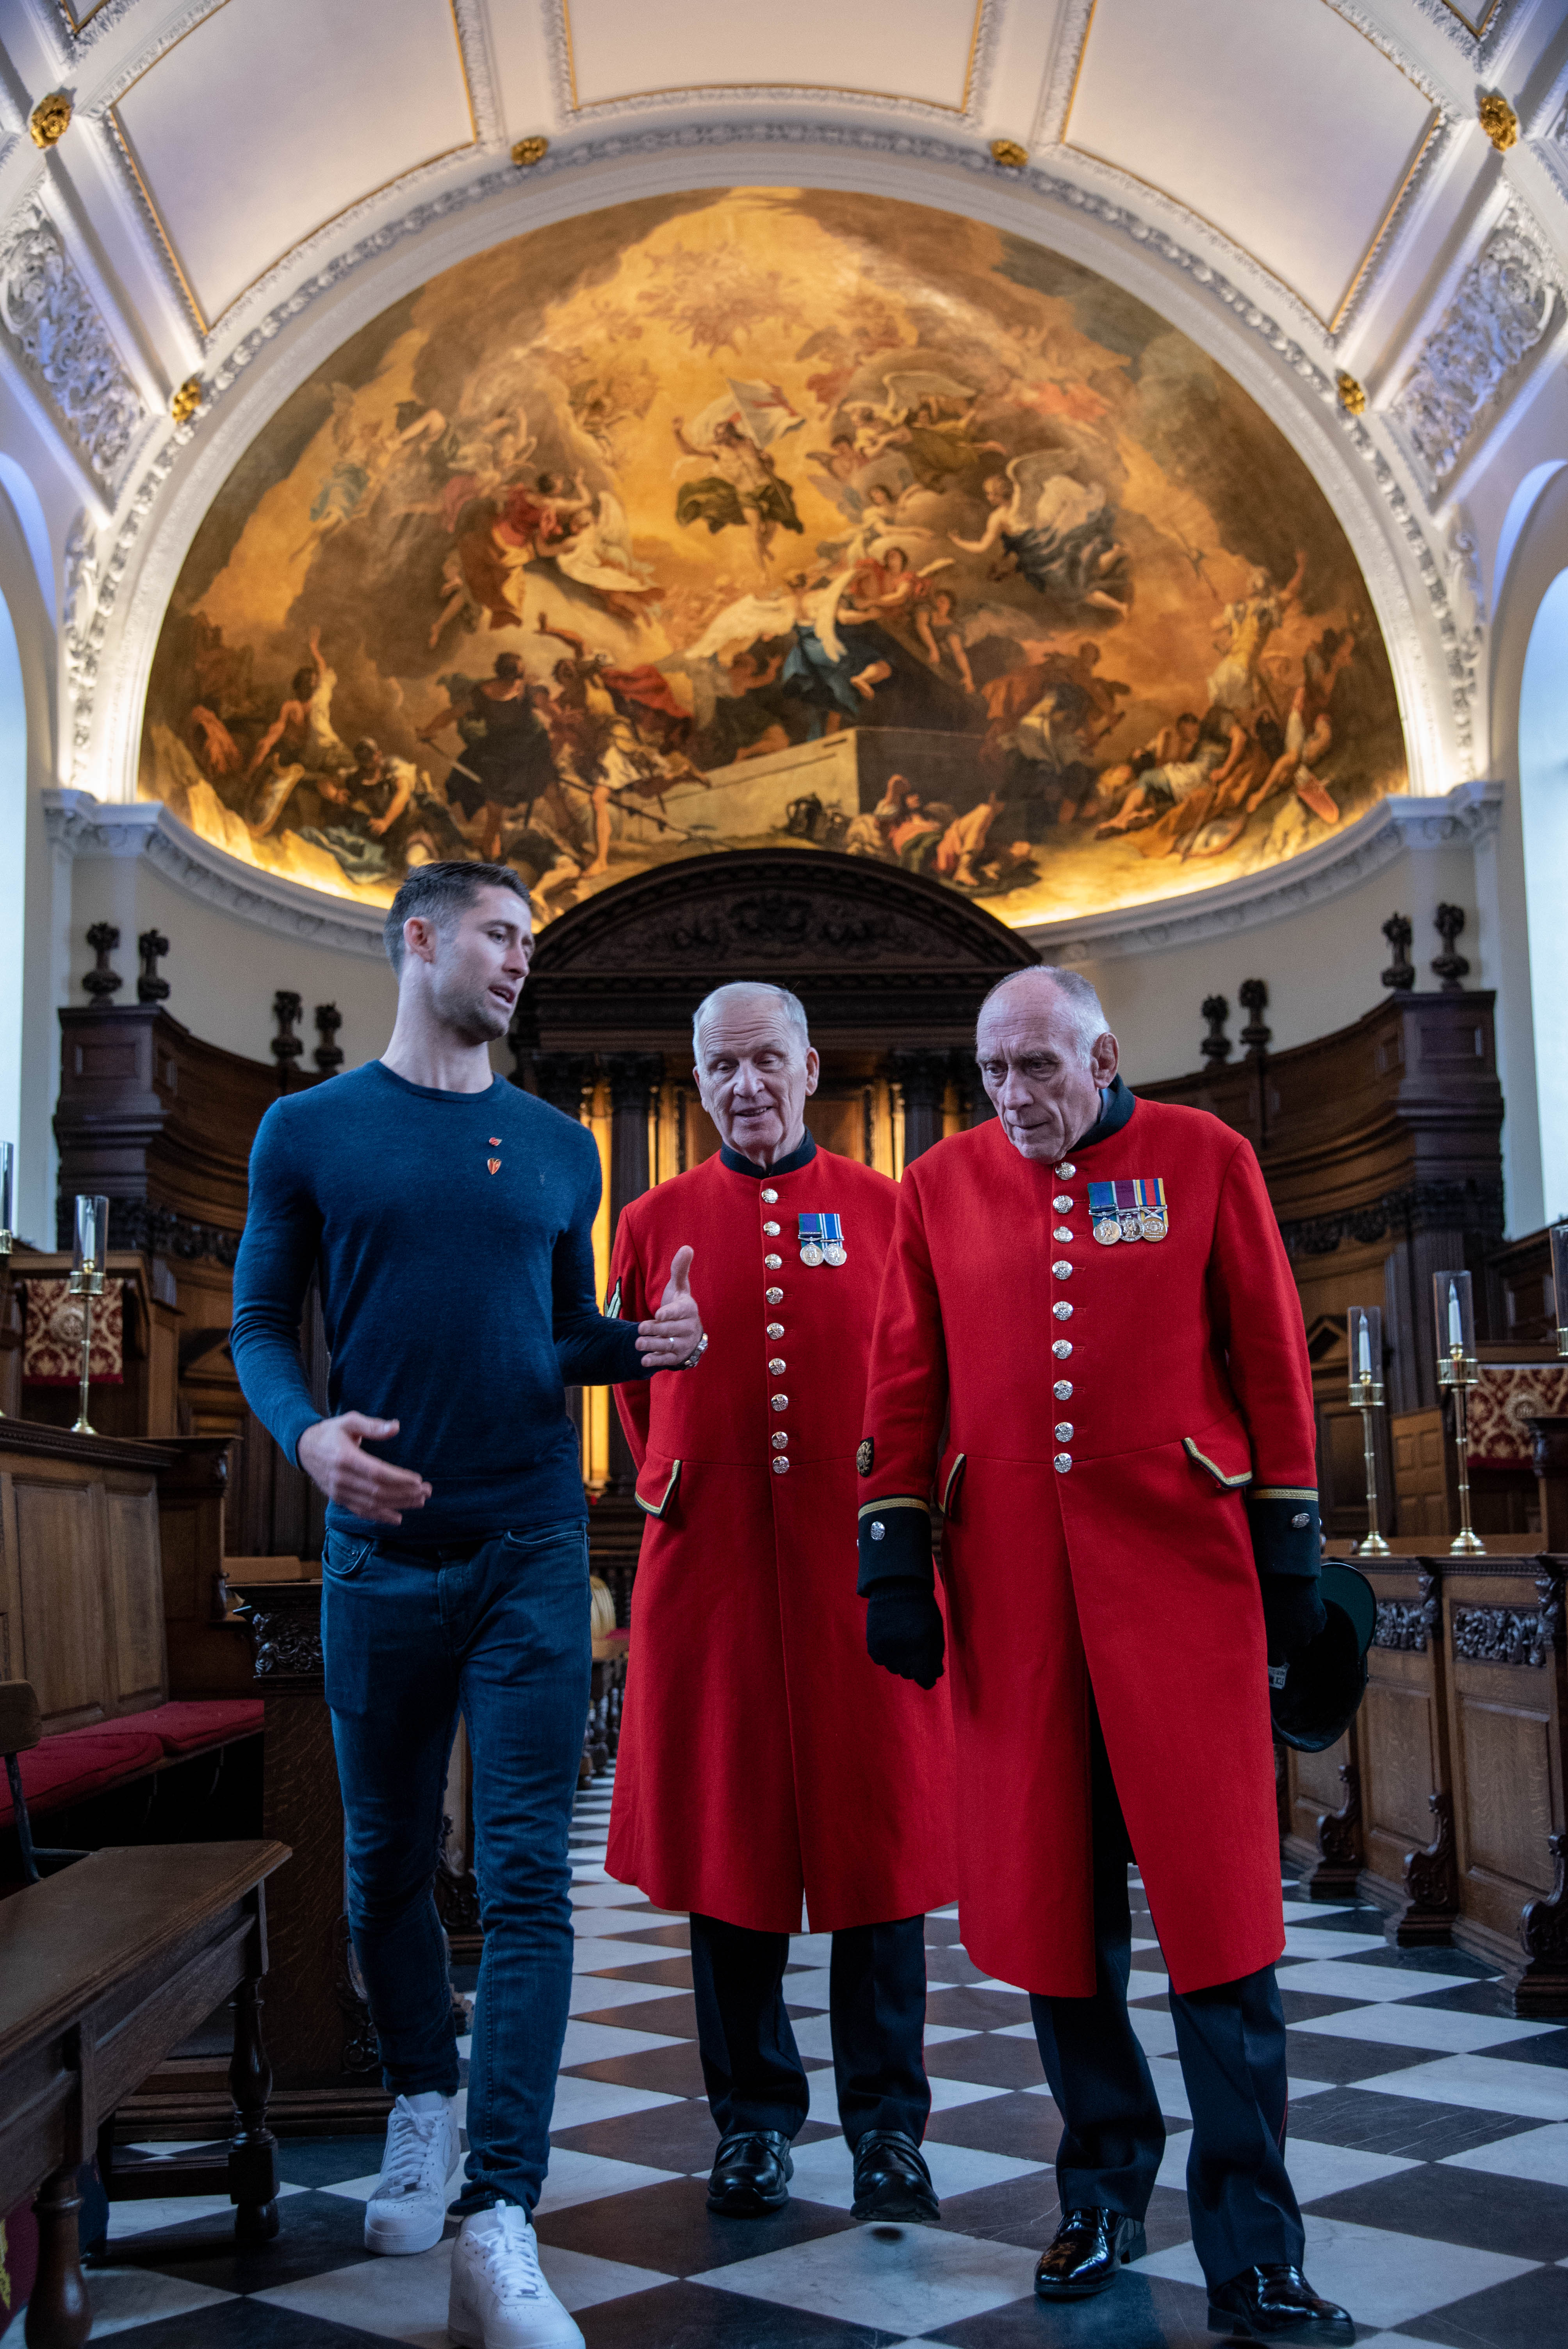 Chelsea Pensioners & Gary Cahill in the Wren Chapel